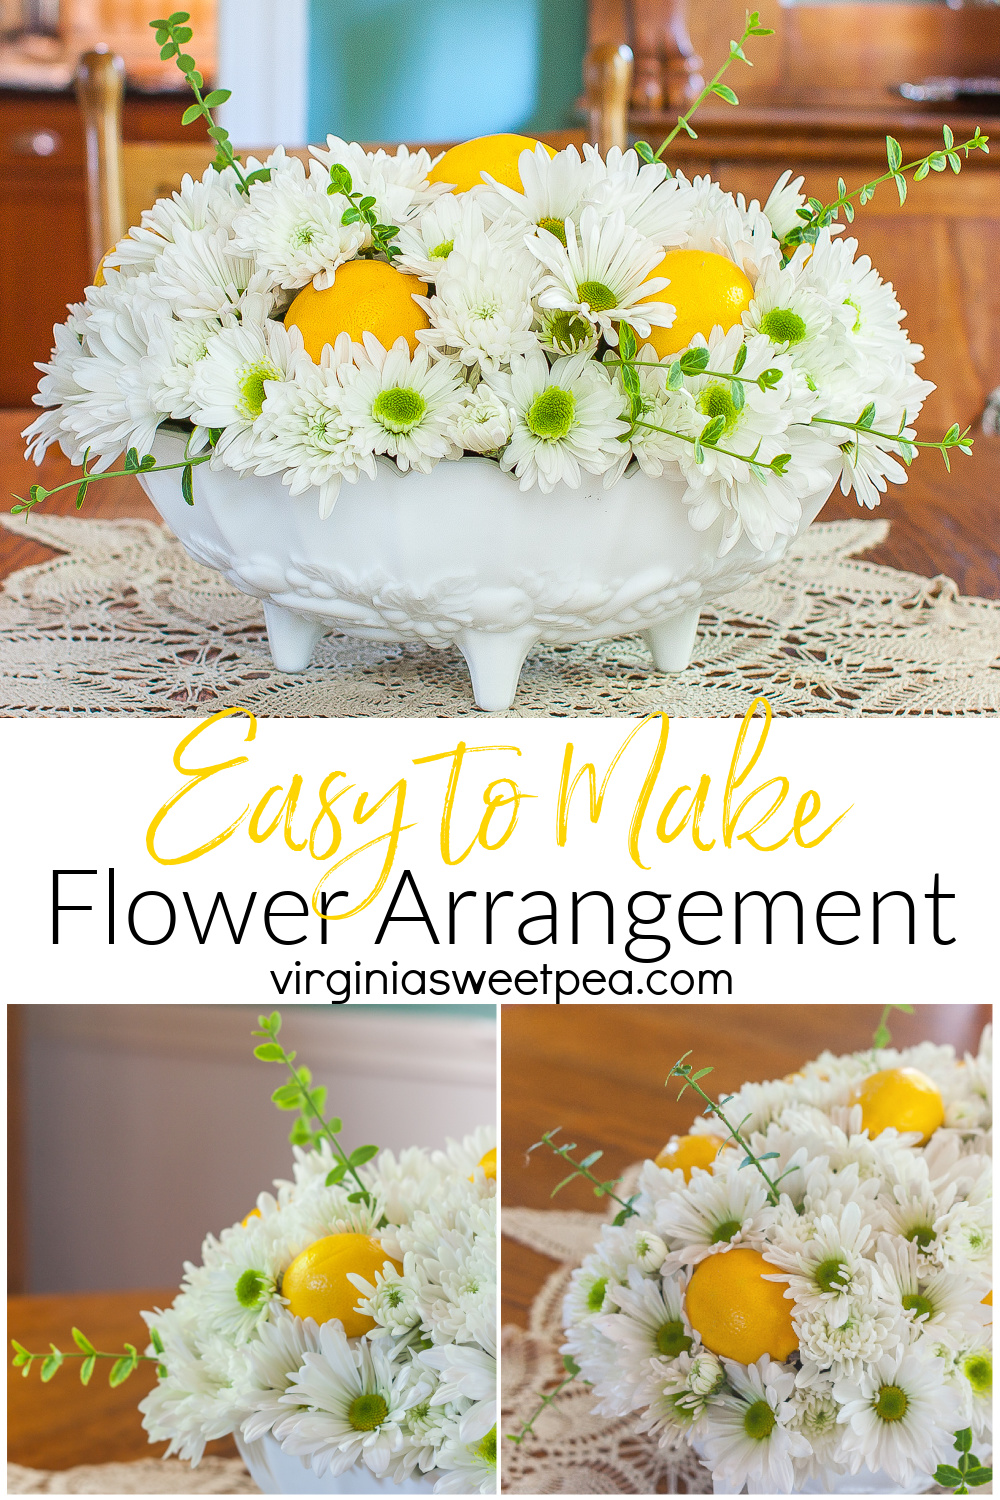 Easy to Make Flower Arrangement - Forget ordering an expensive flower arrangement from the florist!  Learn how to make your own arrangement at home with this step-by-step tutorial.  #flowerarrangmenttutorial #flowerarrangment #floraldesign via @spaula